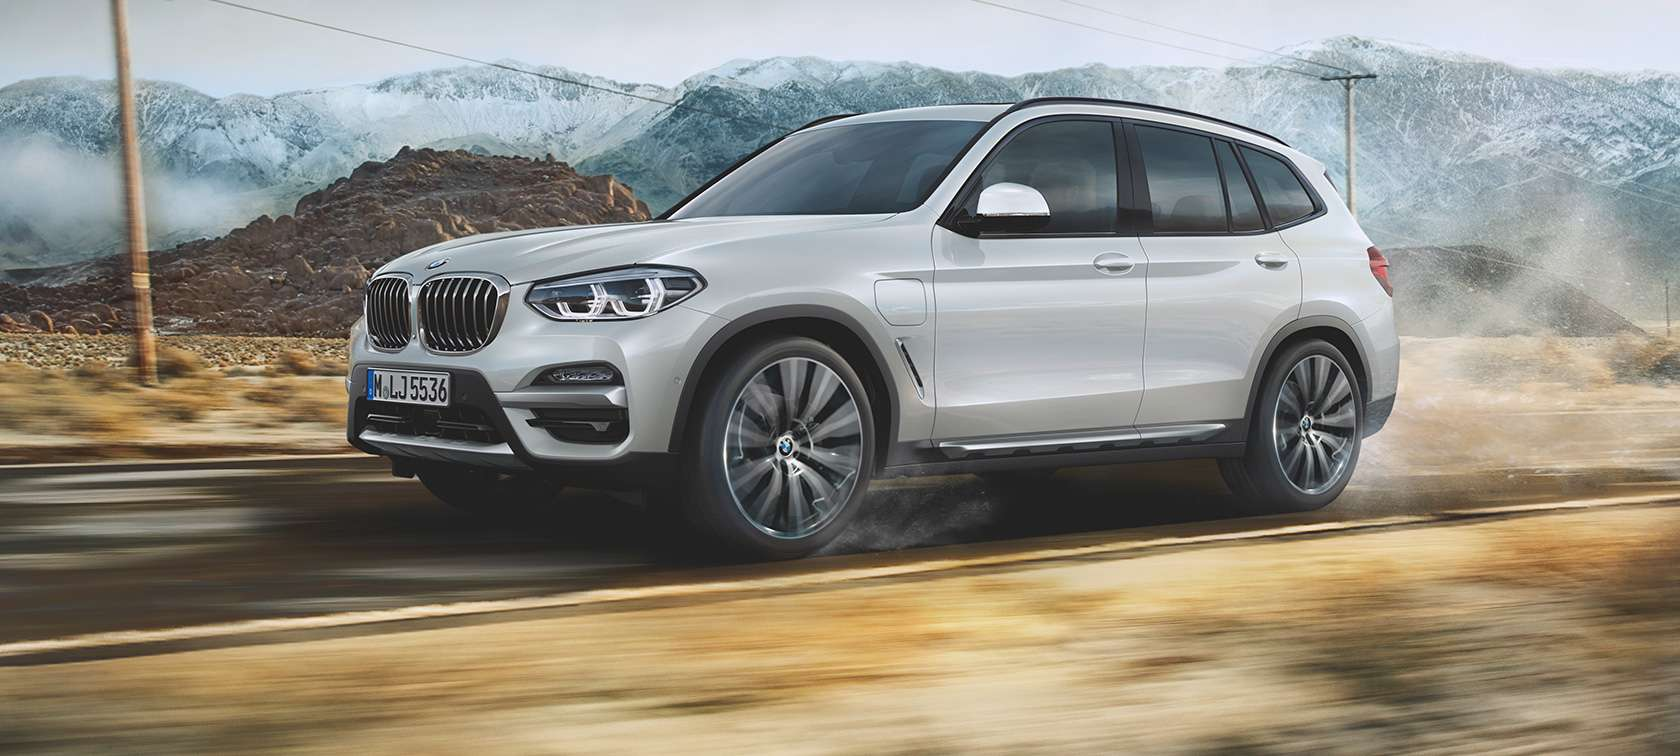 BMW X3 xDrive30e in curve